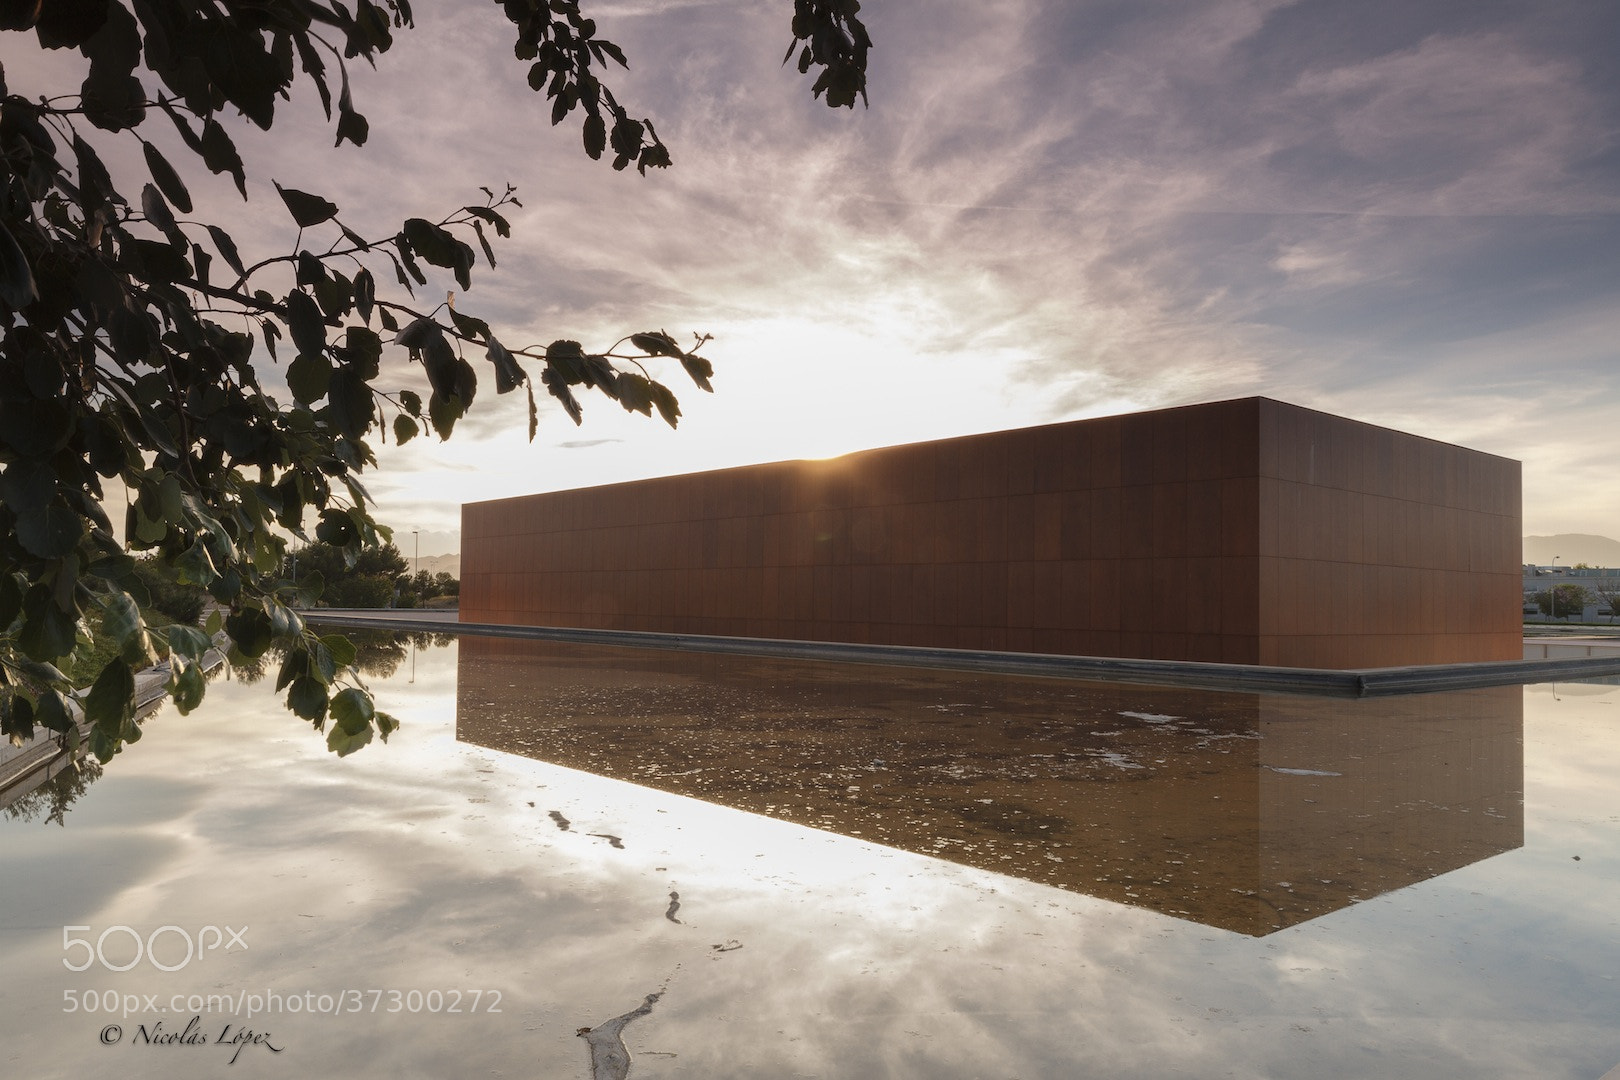 Photograph MUA - Museo de la Universidad de Alicante by Nicolás López on 500px